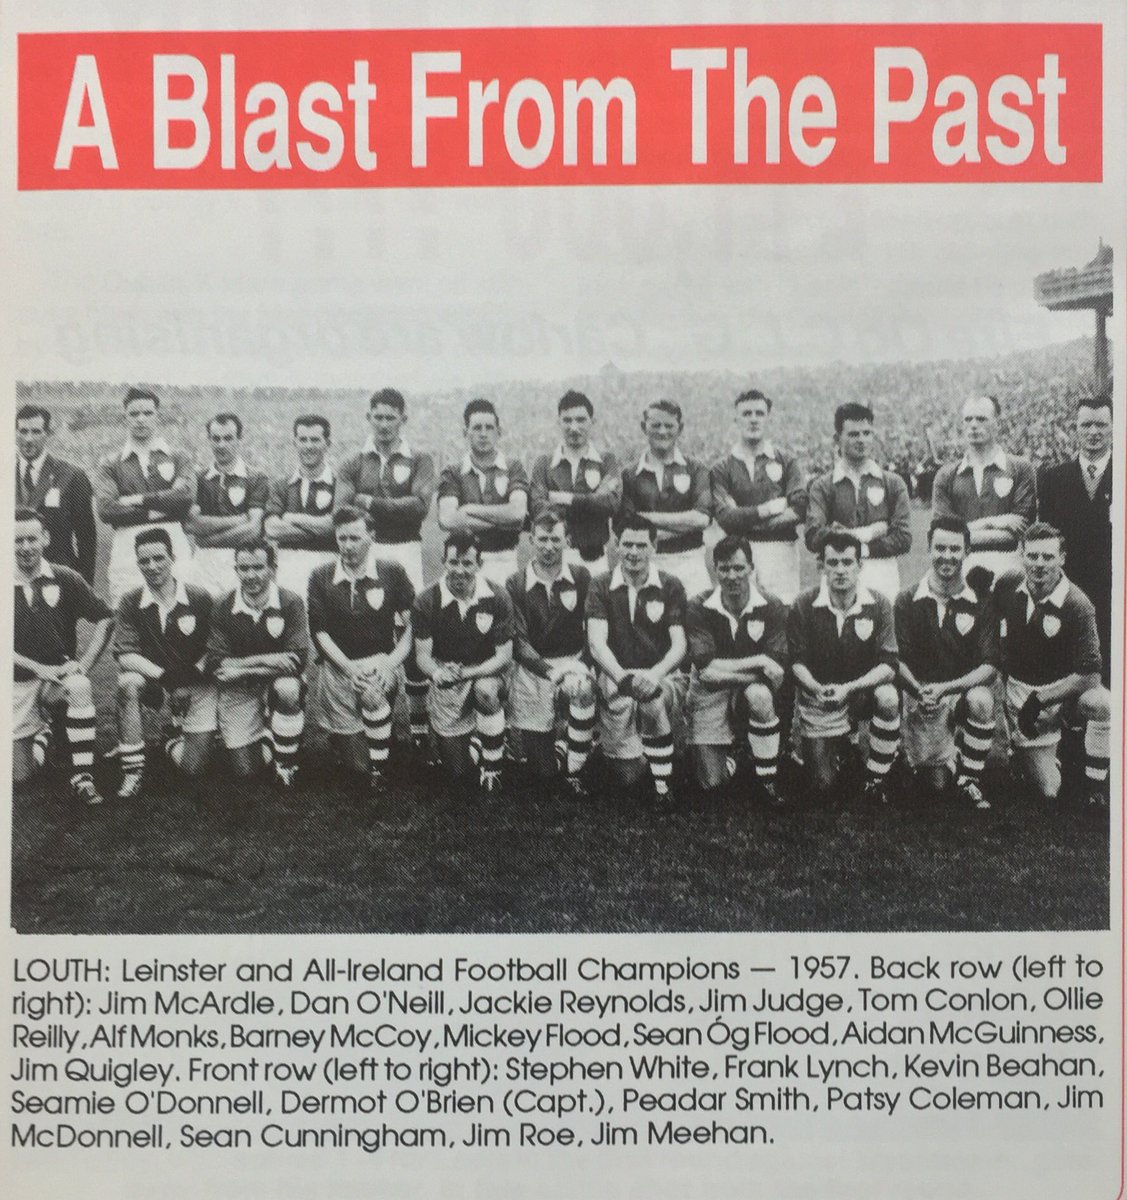 GAA Nostalgia On Twitter Louth Team That Won Leinster And All Ireland SFC In 1957 Gaa